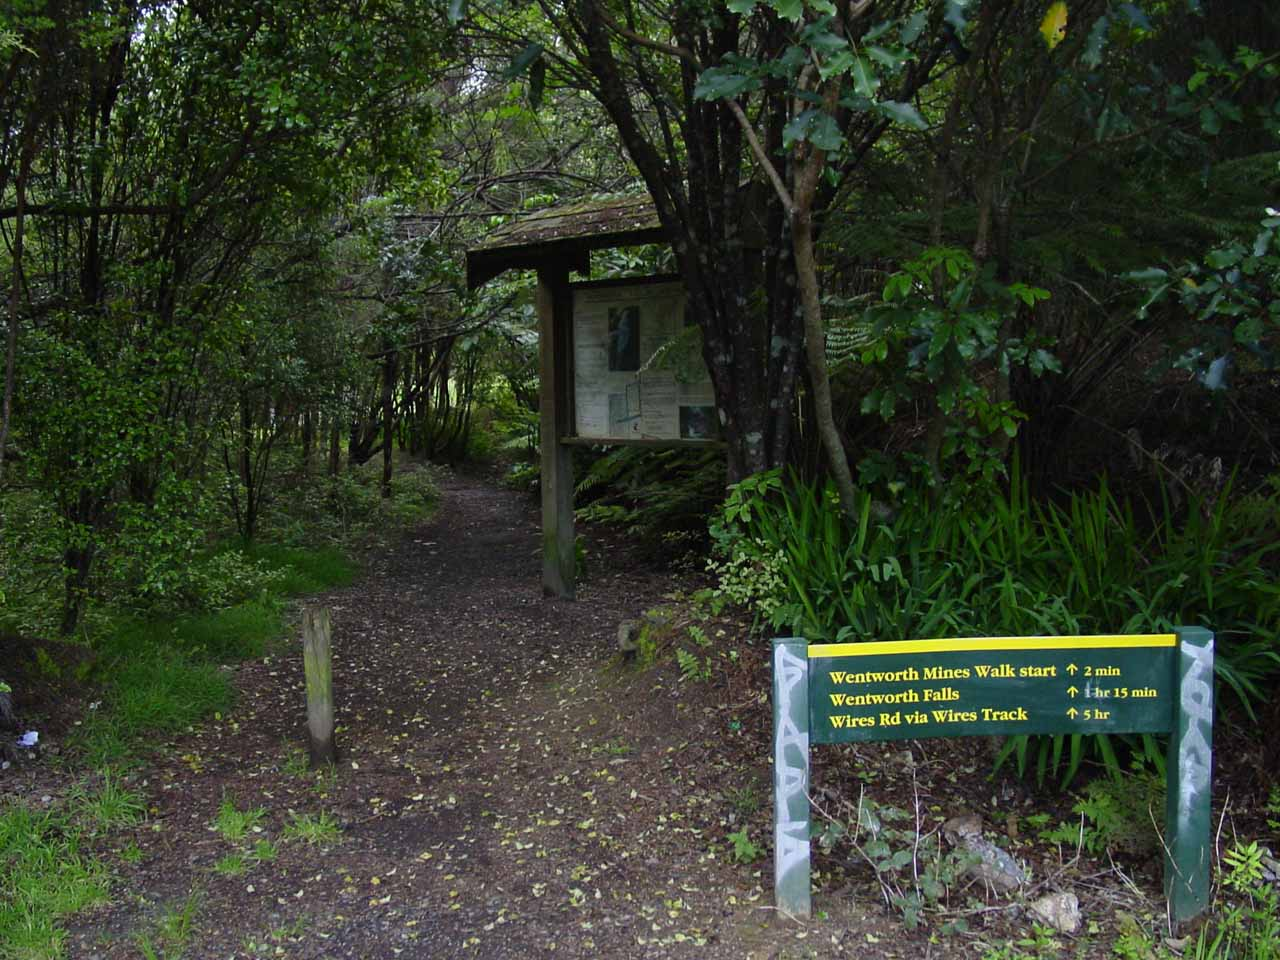 Signage at the trailhead for Wentworth Falls